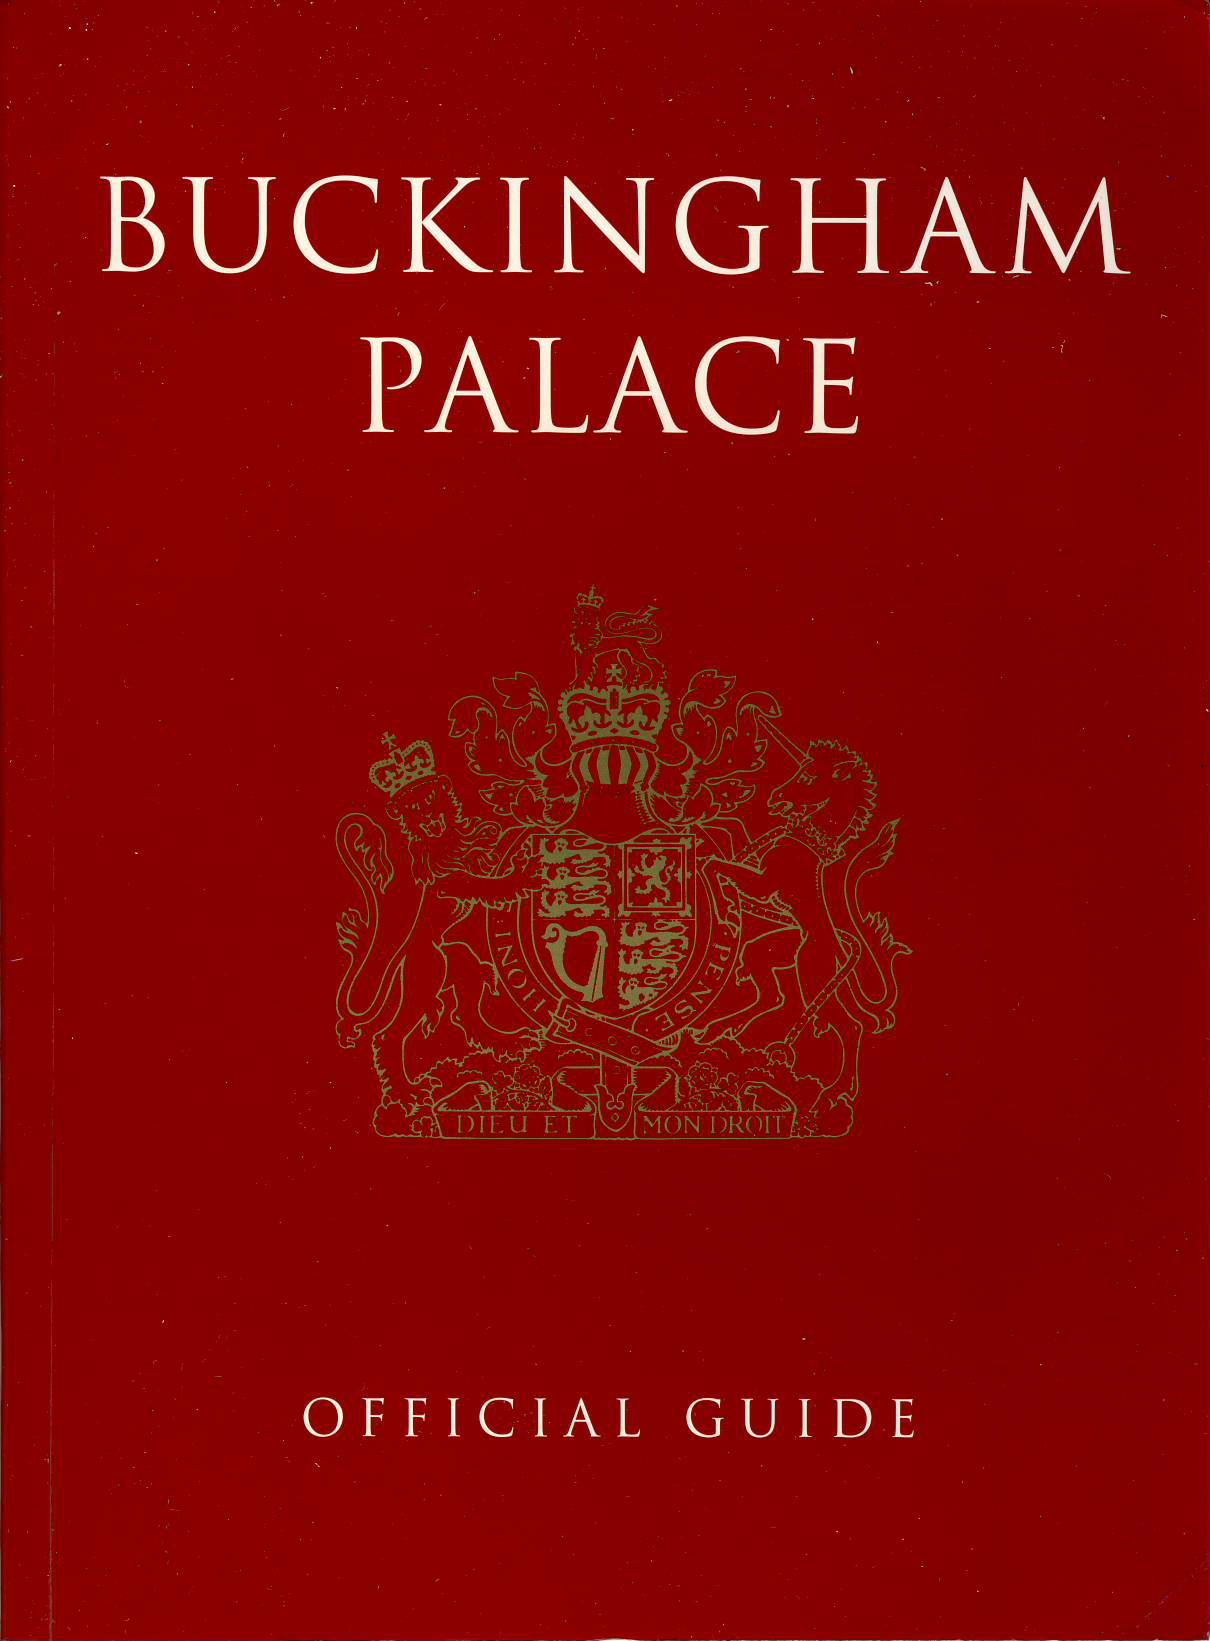 Buckingham Palace Official Guide 1994 refS5 Large glossy paperback 48 pages approx 28cm x 20cm - a pre-owned item in good clean condition.